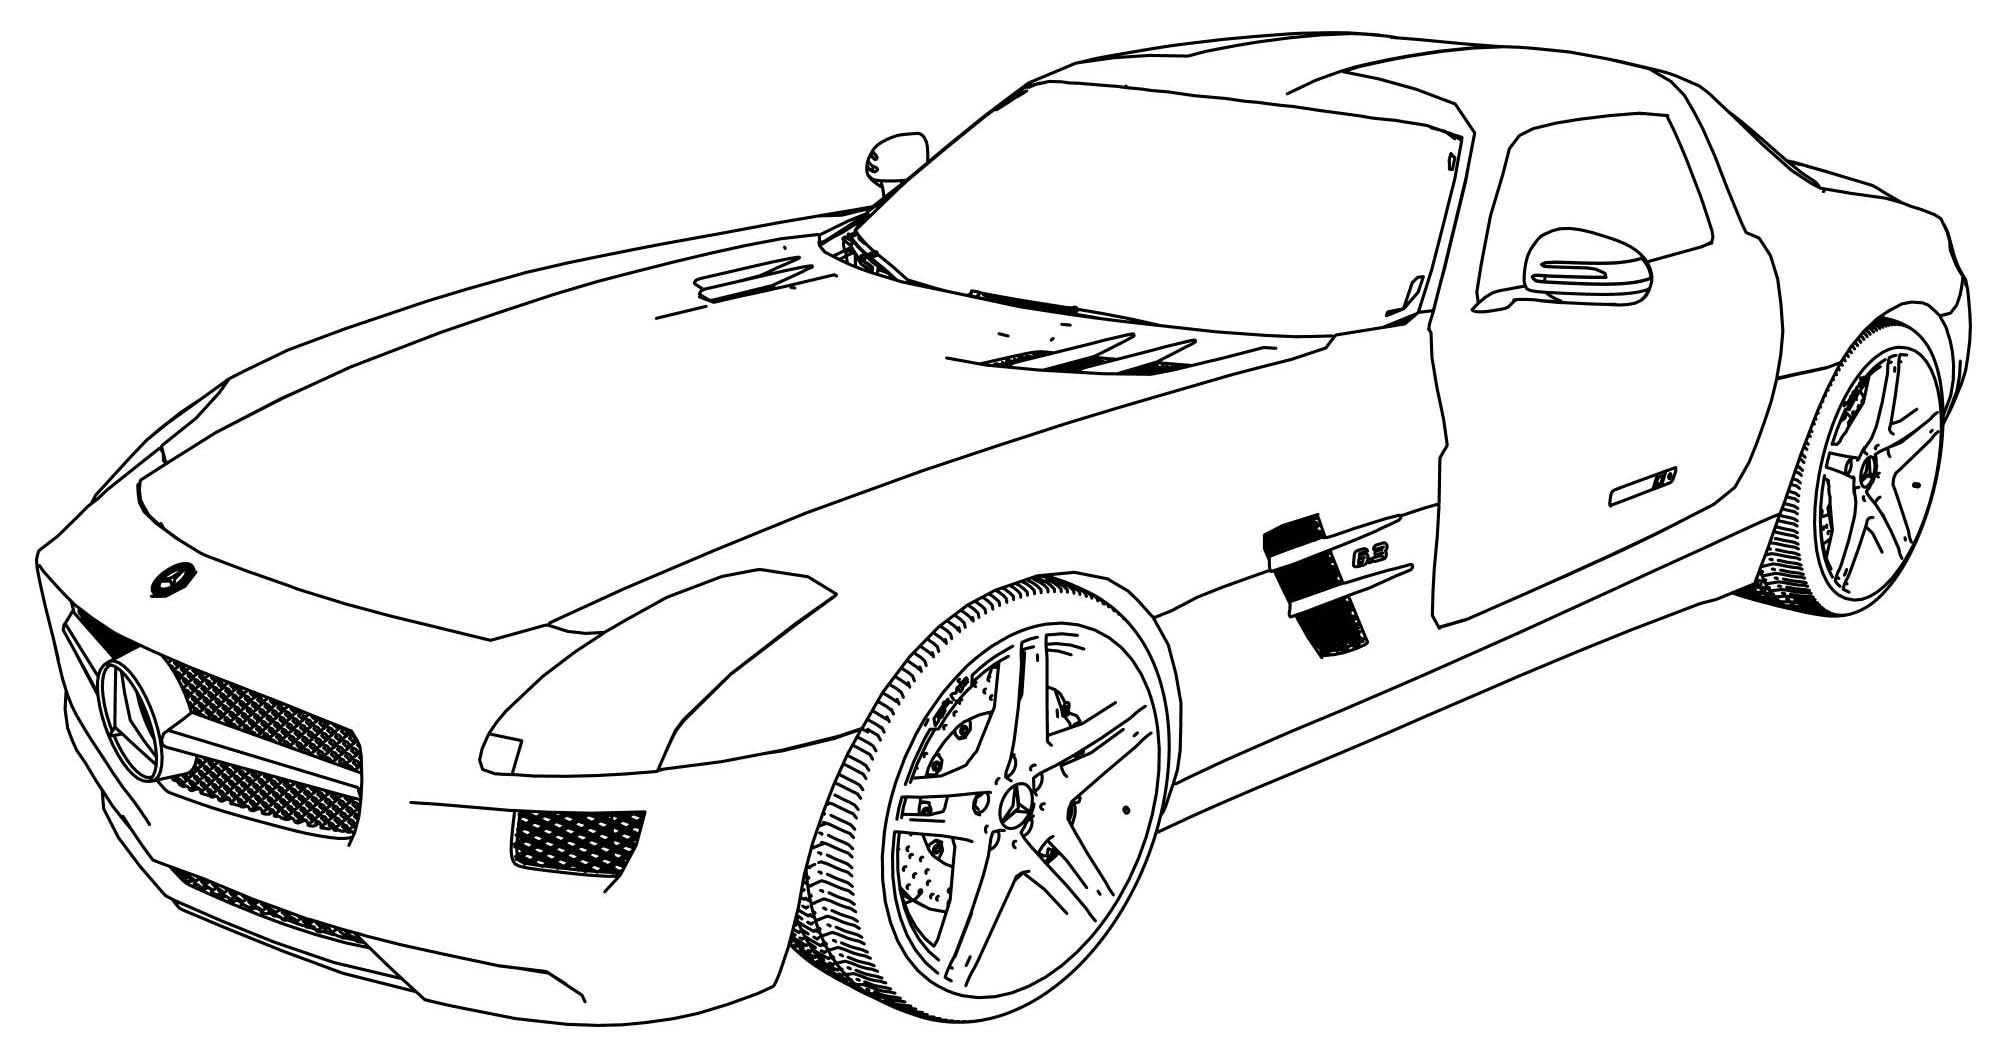 Mercedes Benz Sls Amg Coloring Pages Collection Hartford House Bathroom Vanity Accessories Vanity Accessories